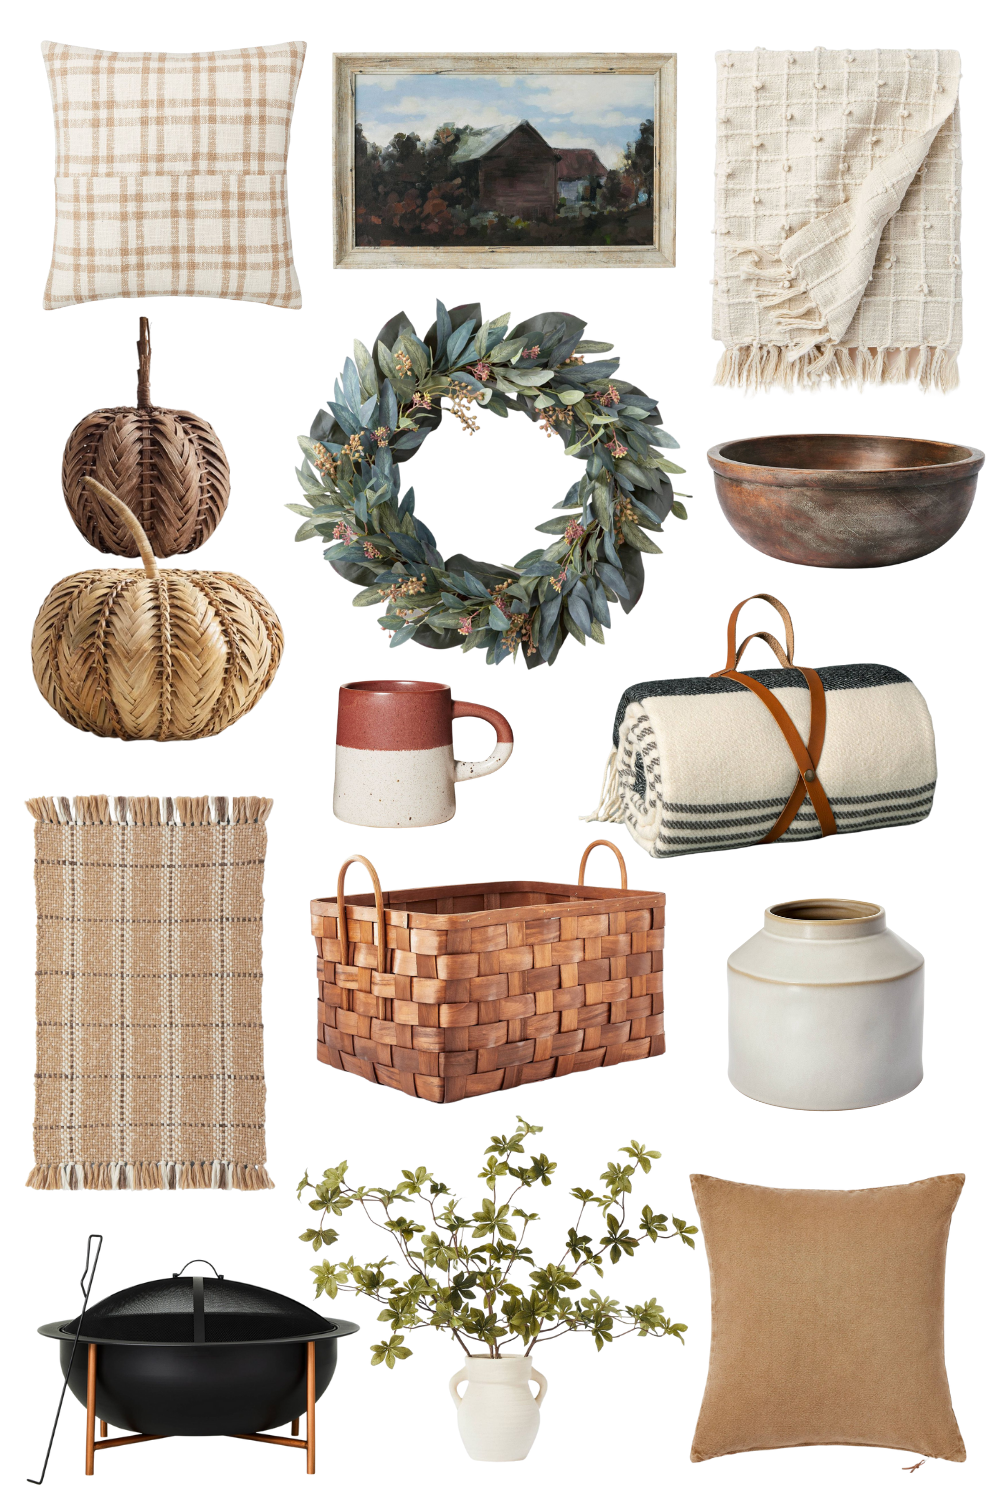 Favorite Fall Home Decor Finds 2021